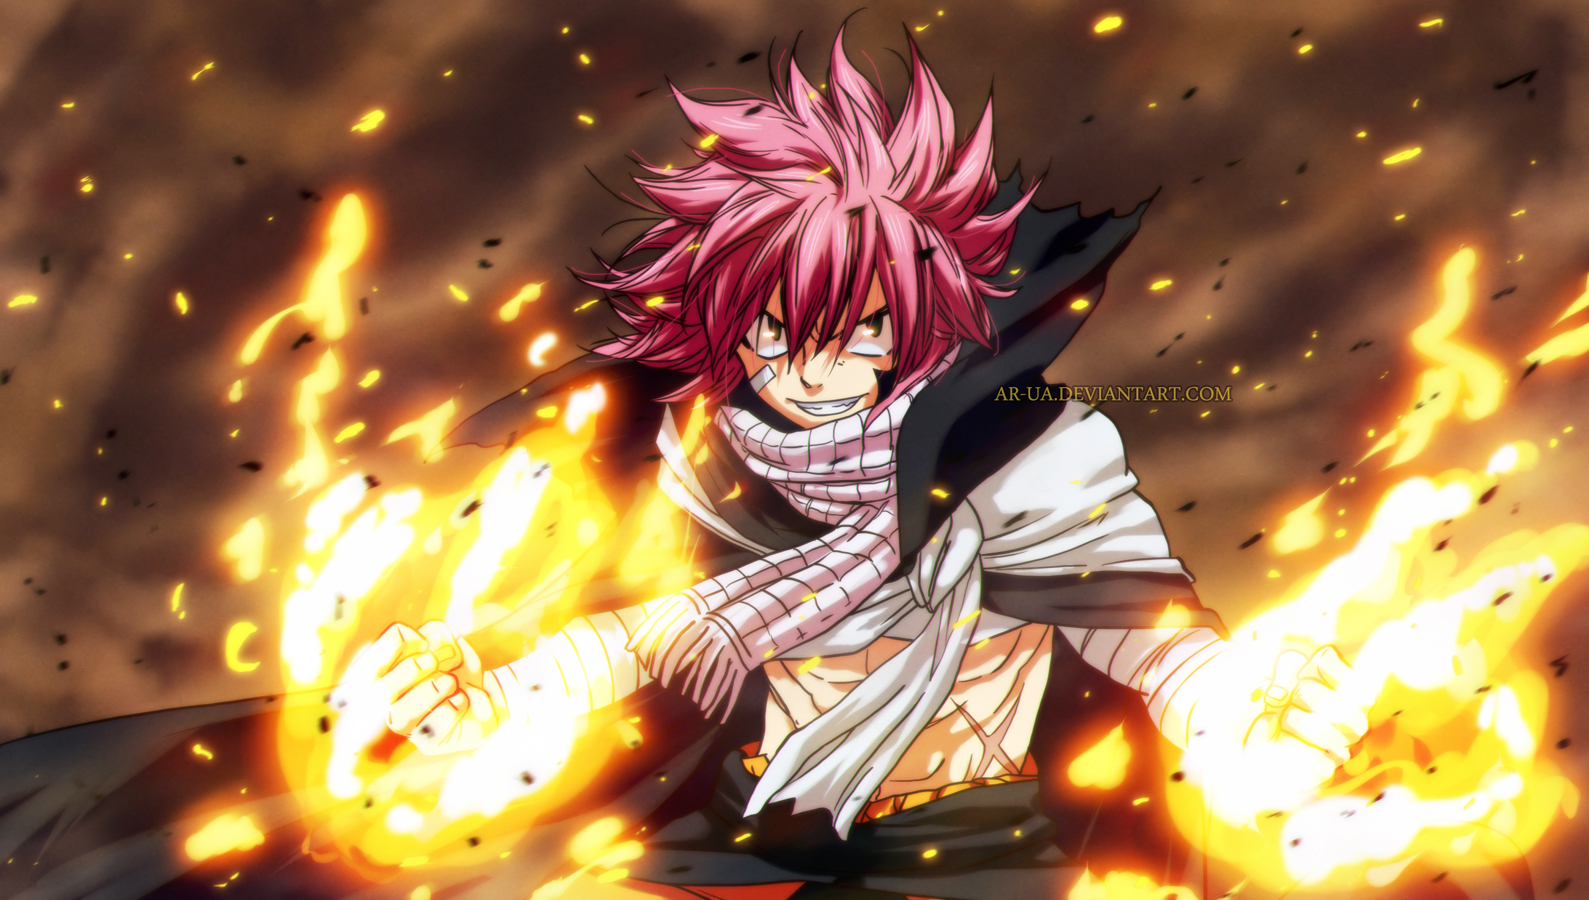 Favorite character outfit/designs? : fairytail